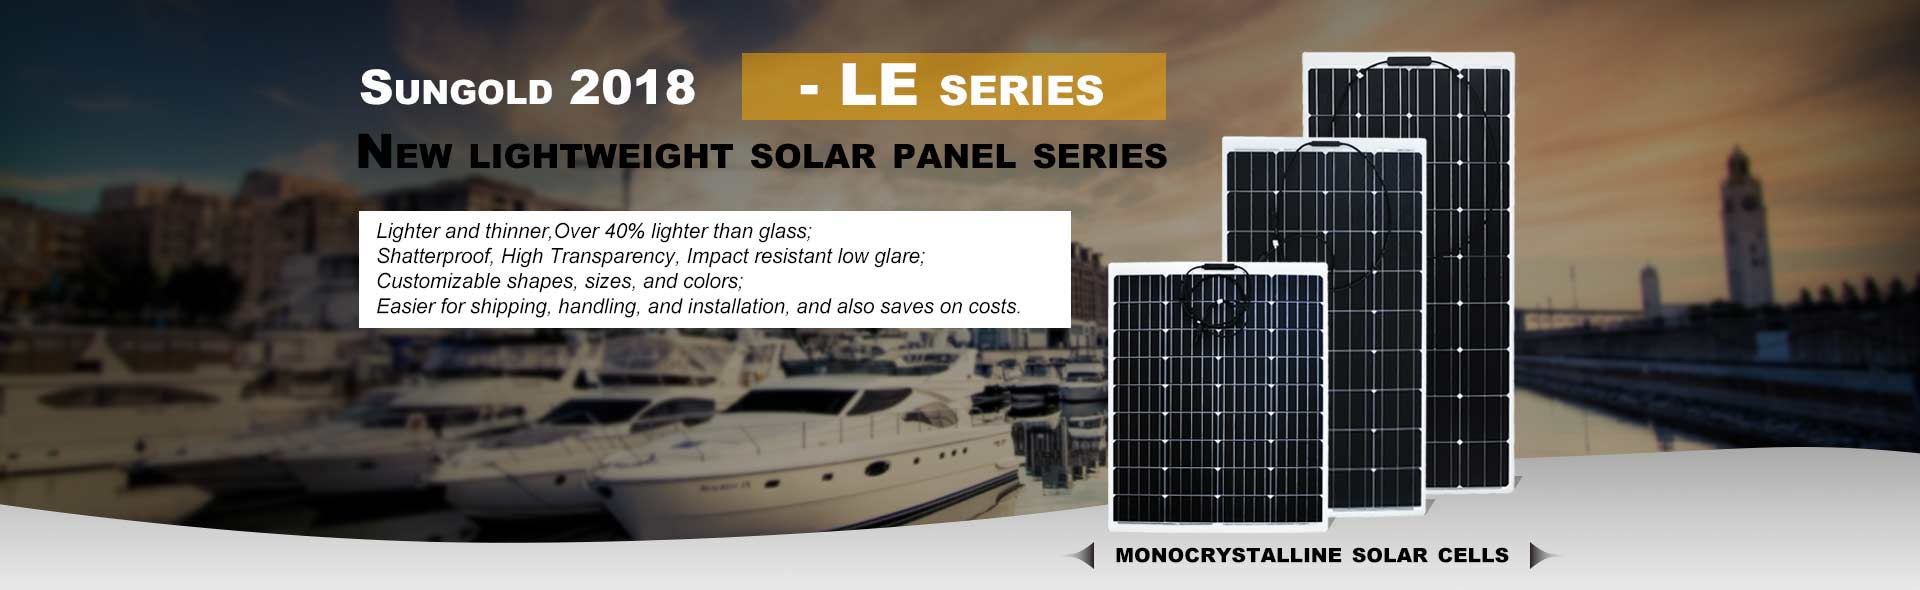 SUngold lightweight solar panel